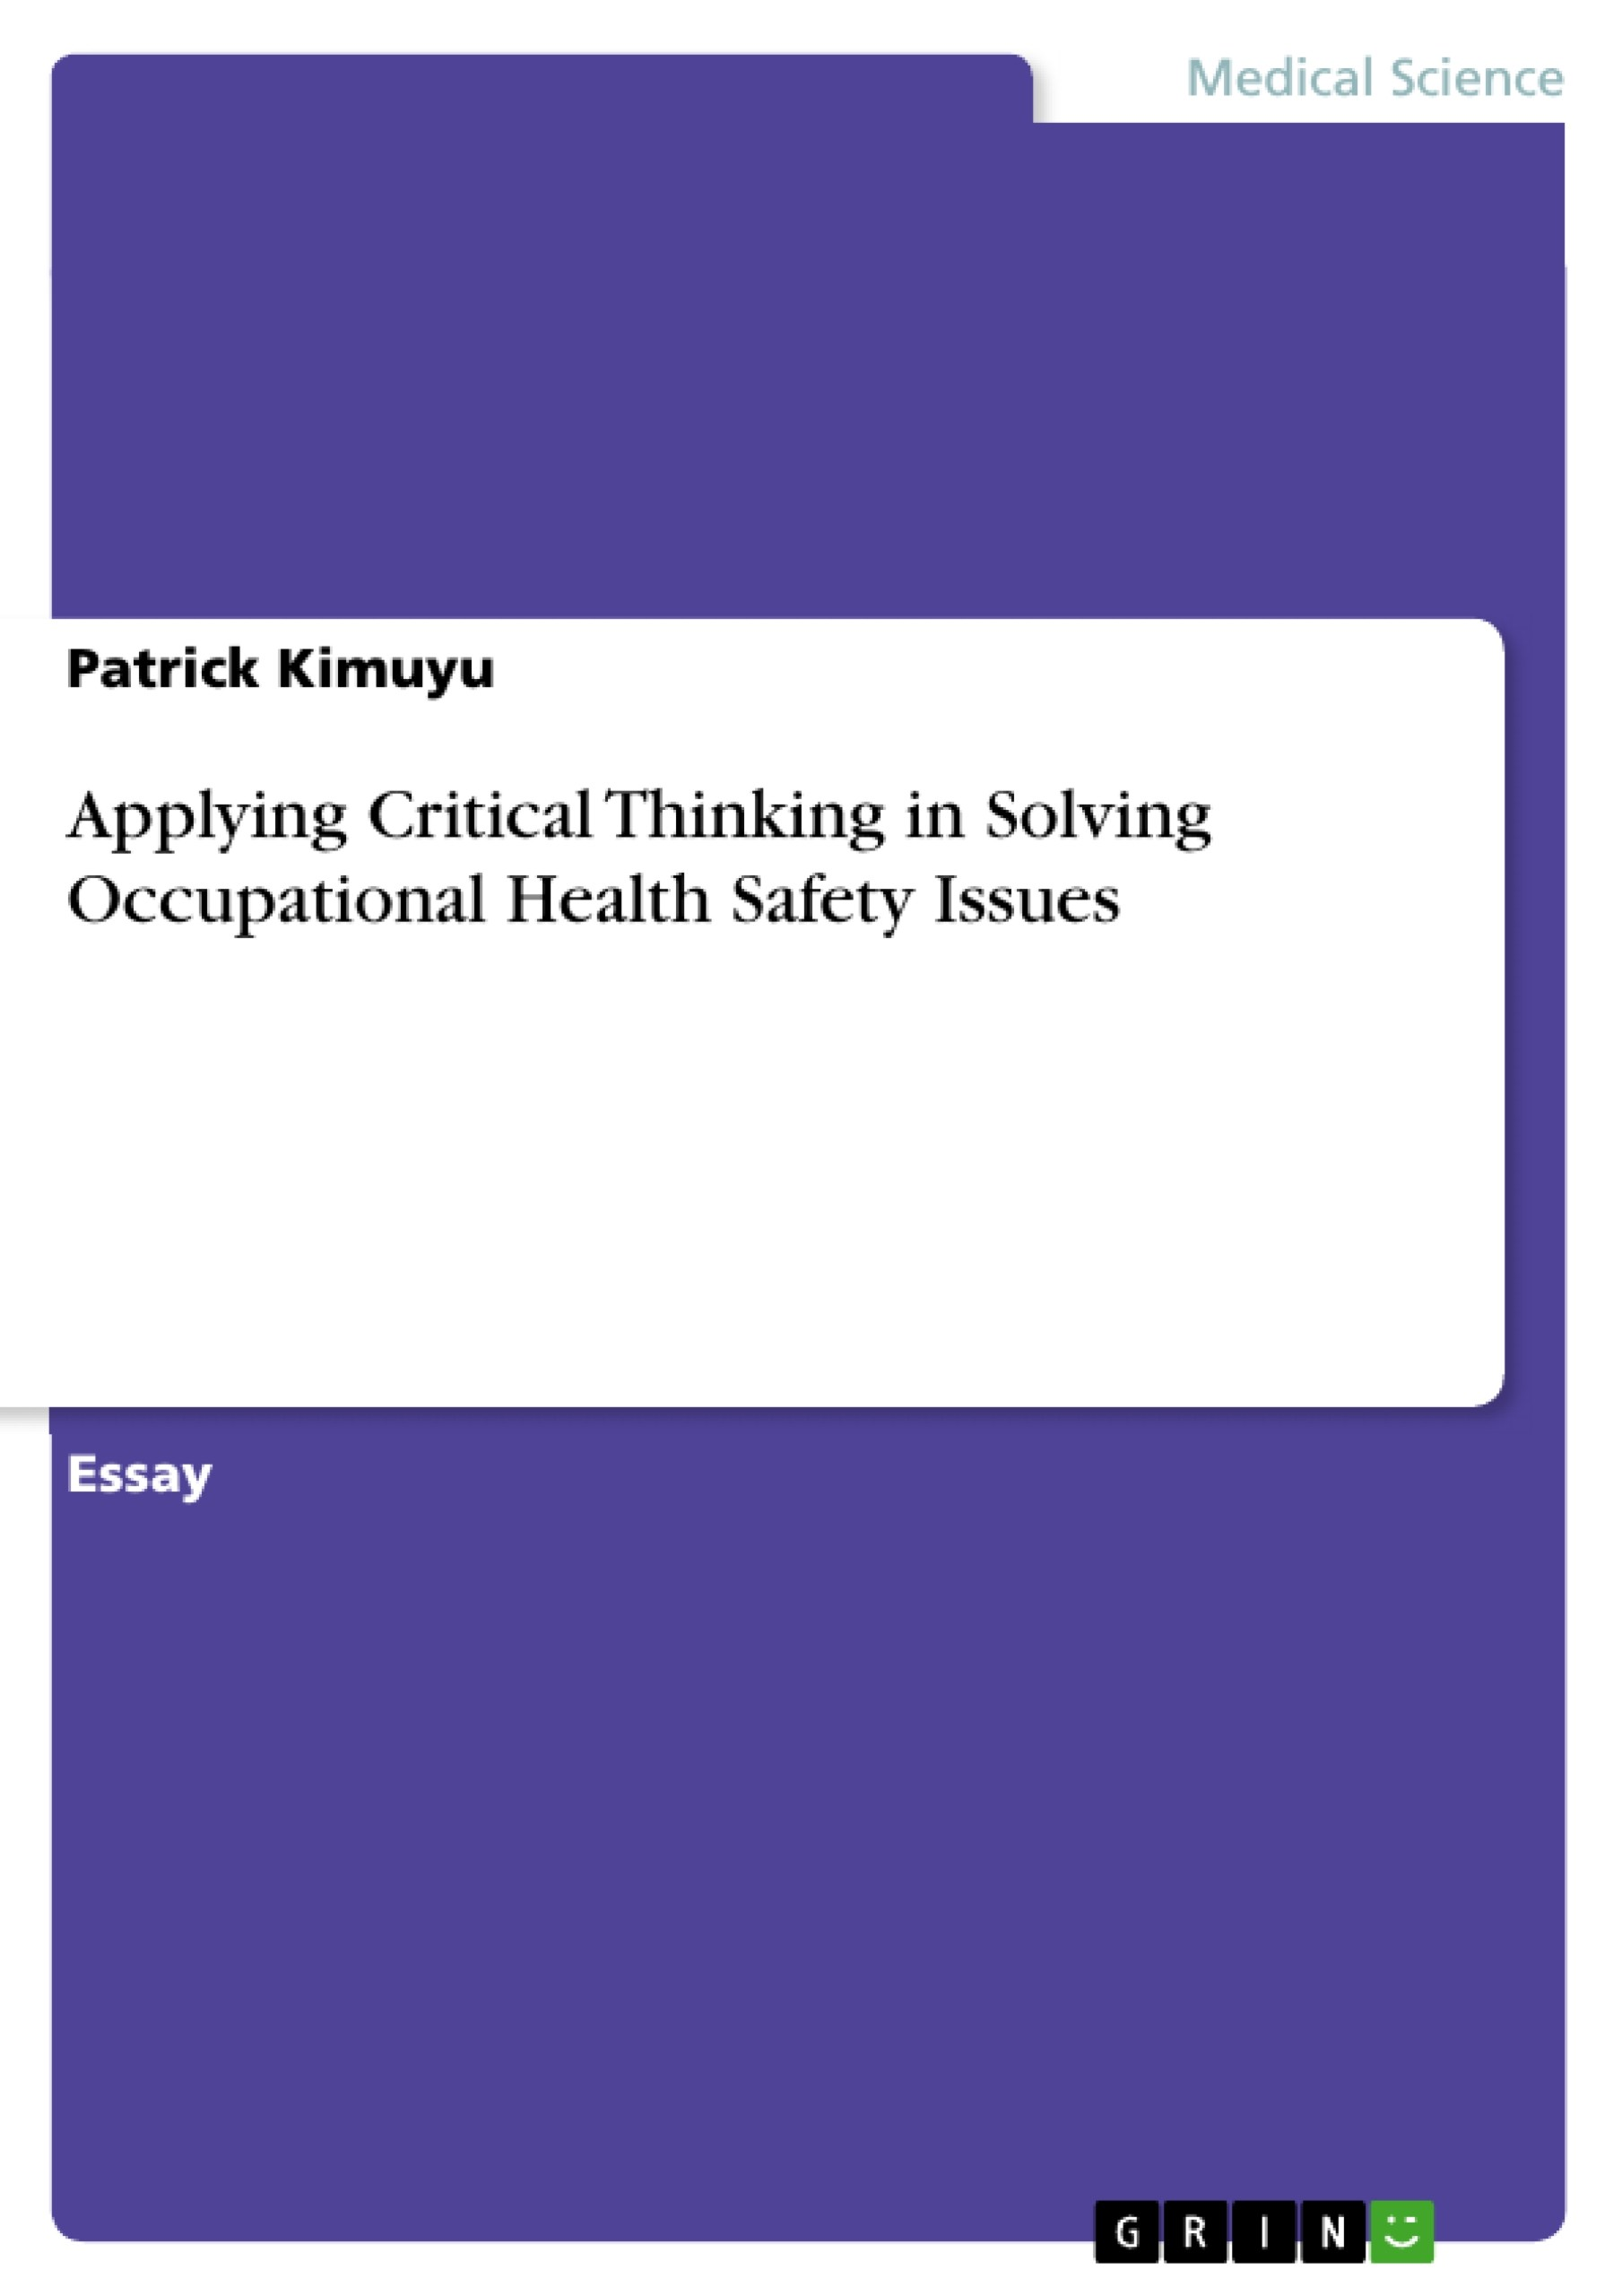 Applying Critical Thinking in Solving Occupational Health Safety Issues